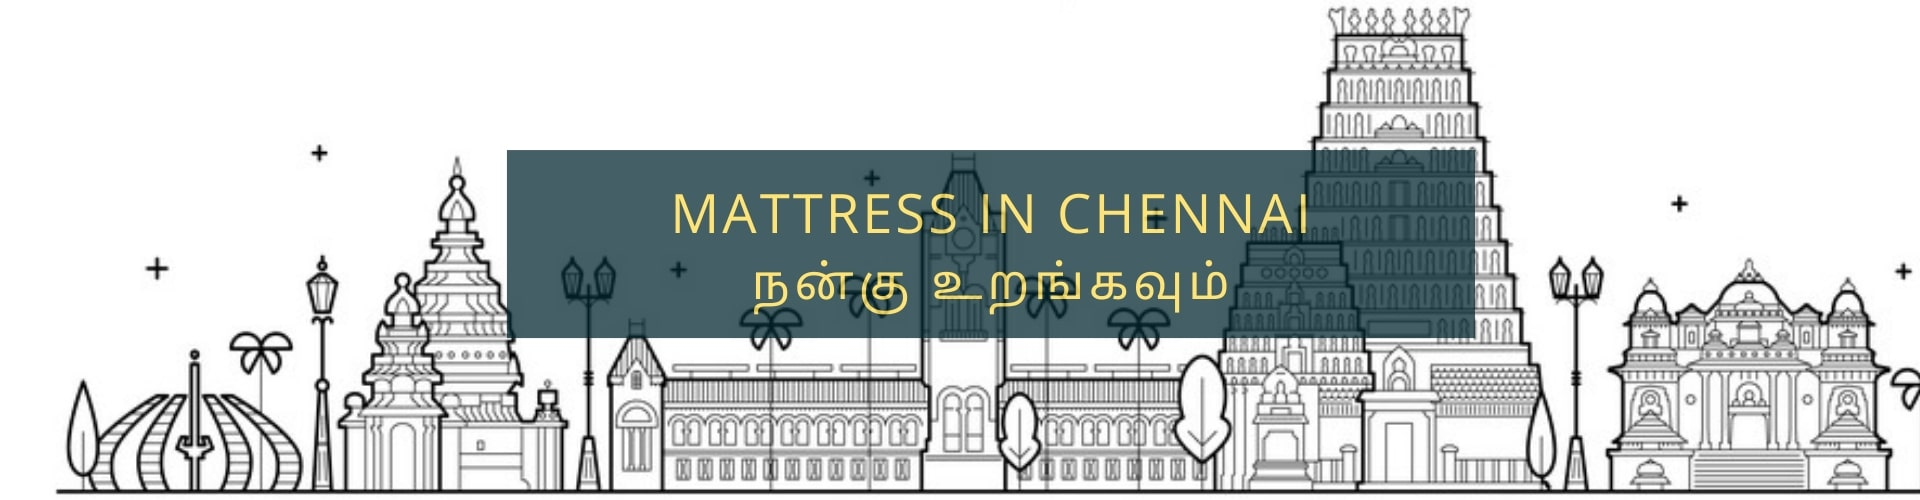 Buy mattresses online in chennai